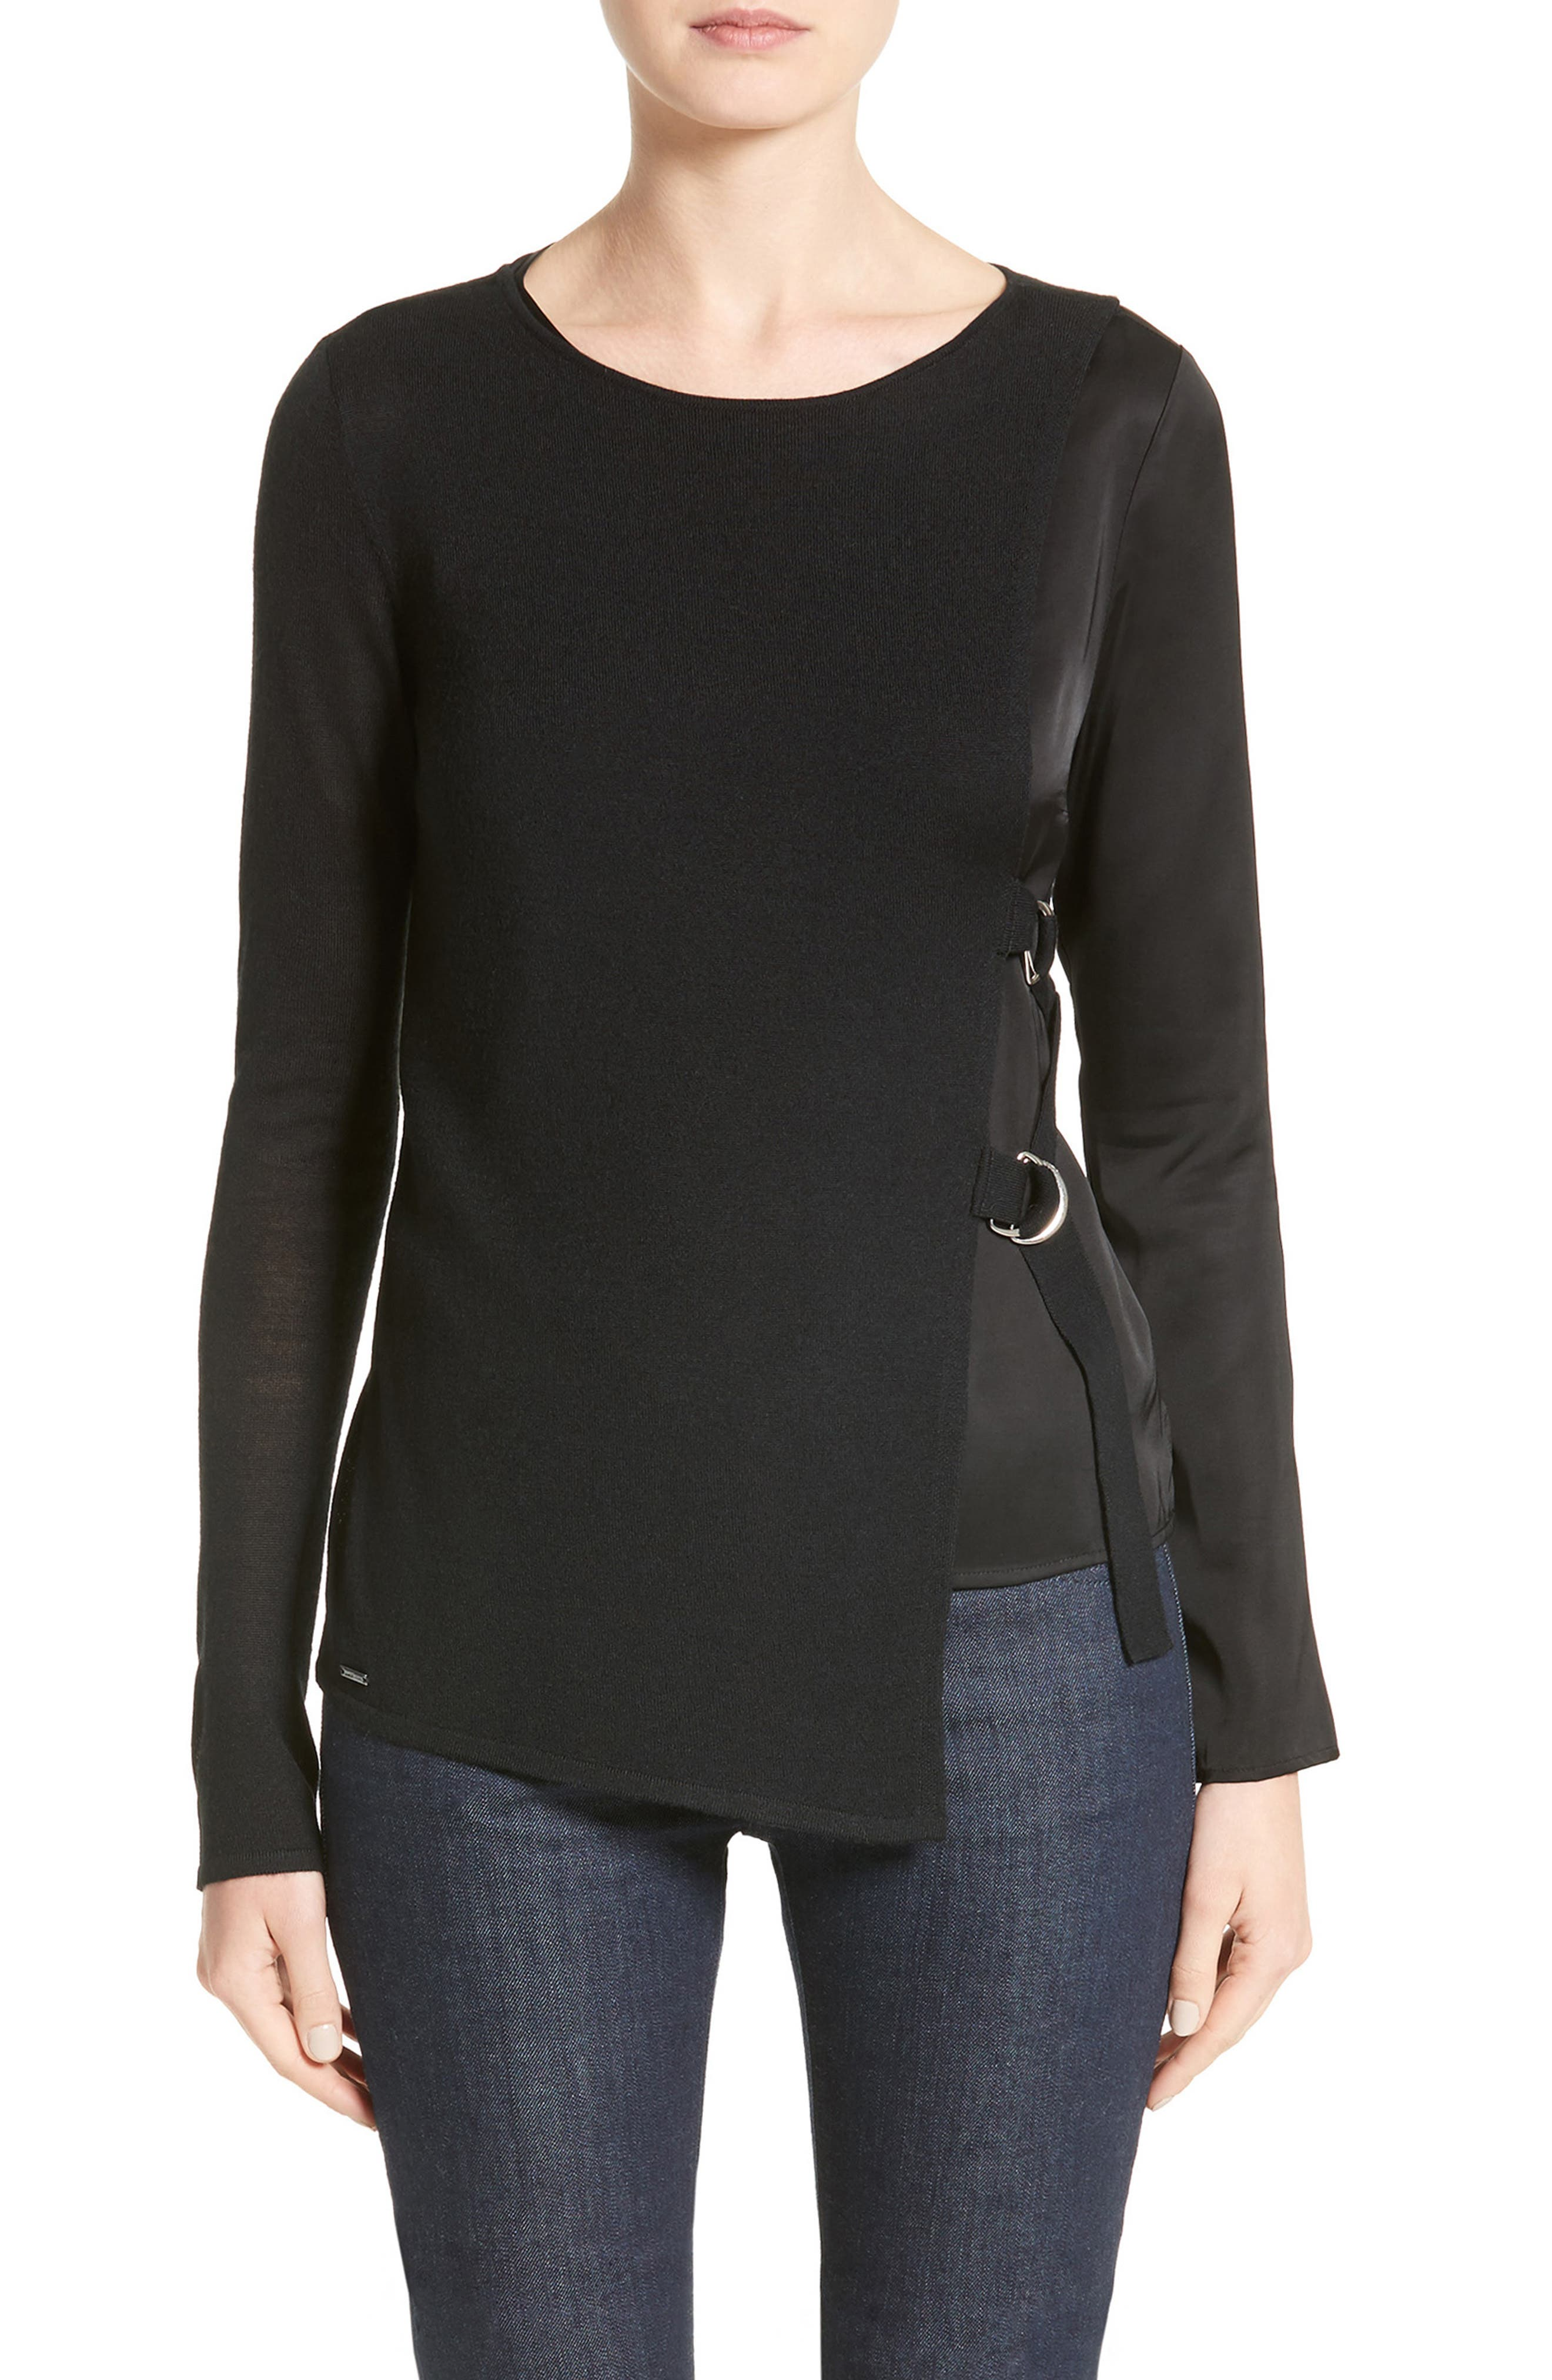 Armani Jeans D-Ring Wool Blend Sweater,                         Main,                         color, Black